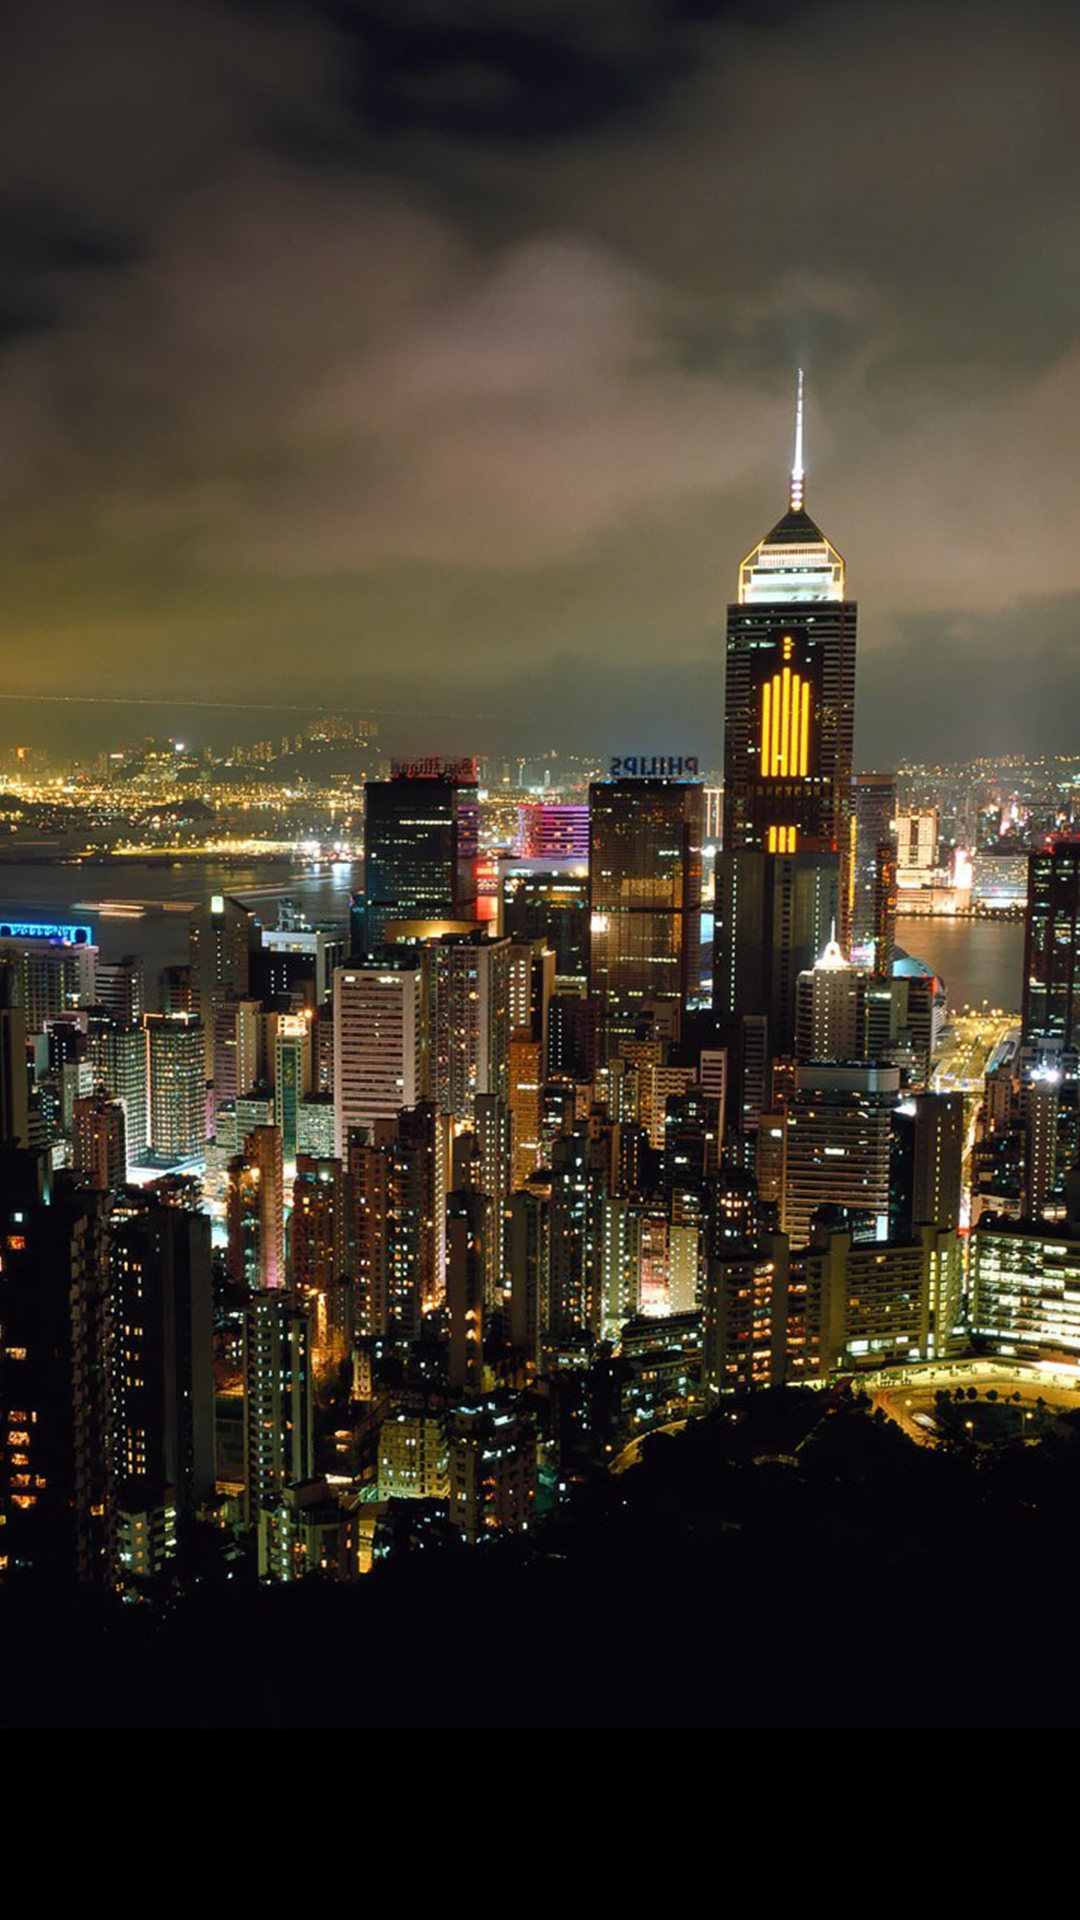 Ultra HD Night City Wallpaper For Your Mobile Phone ...0465